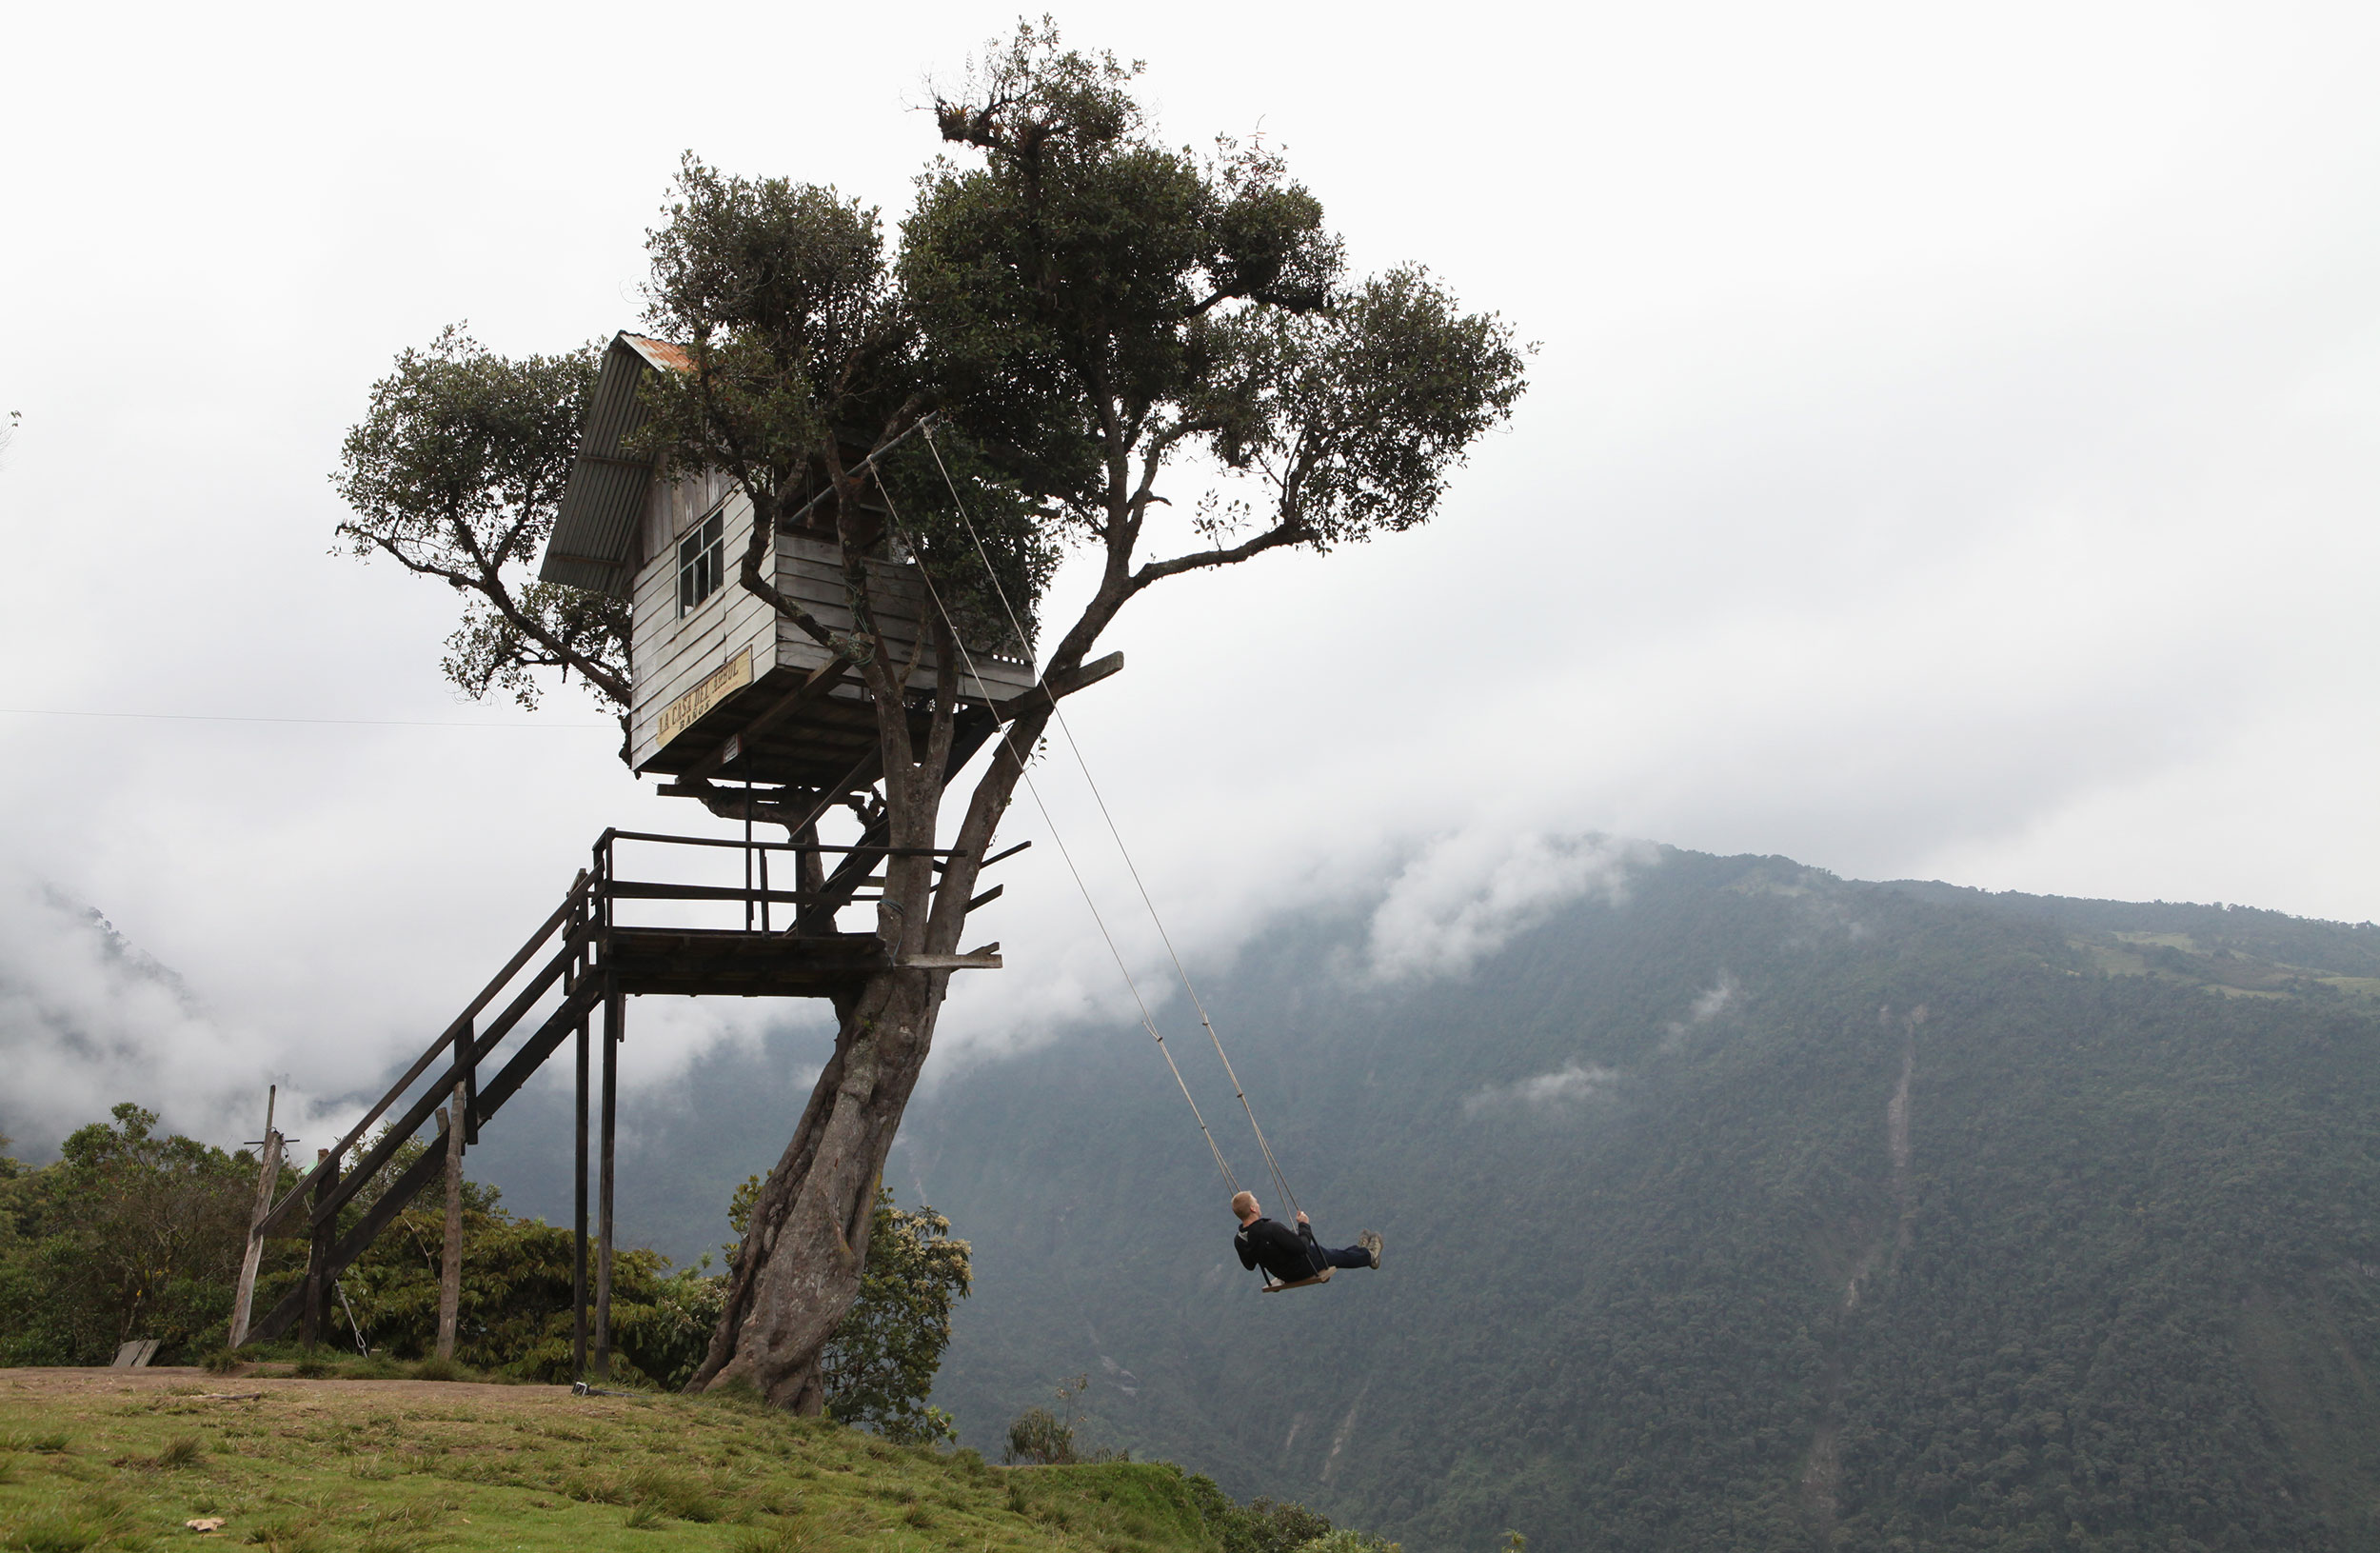 The swing at the edge of the world for Casa del arbol cuenca